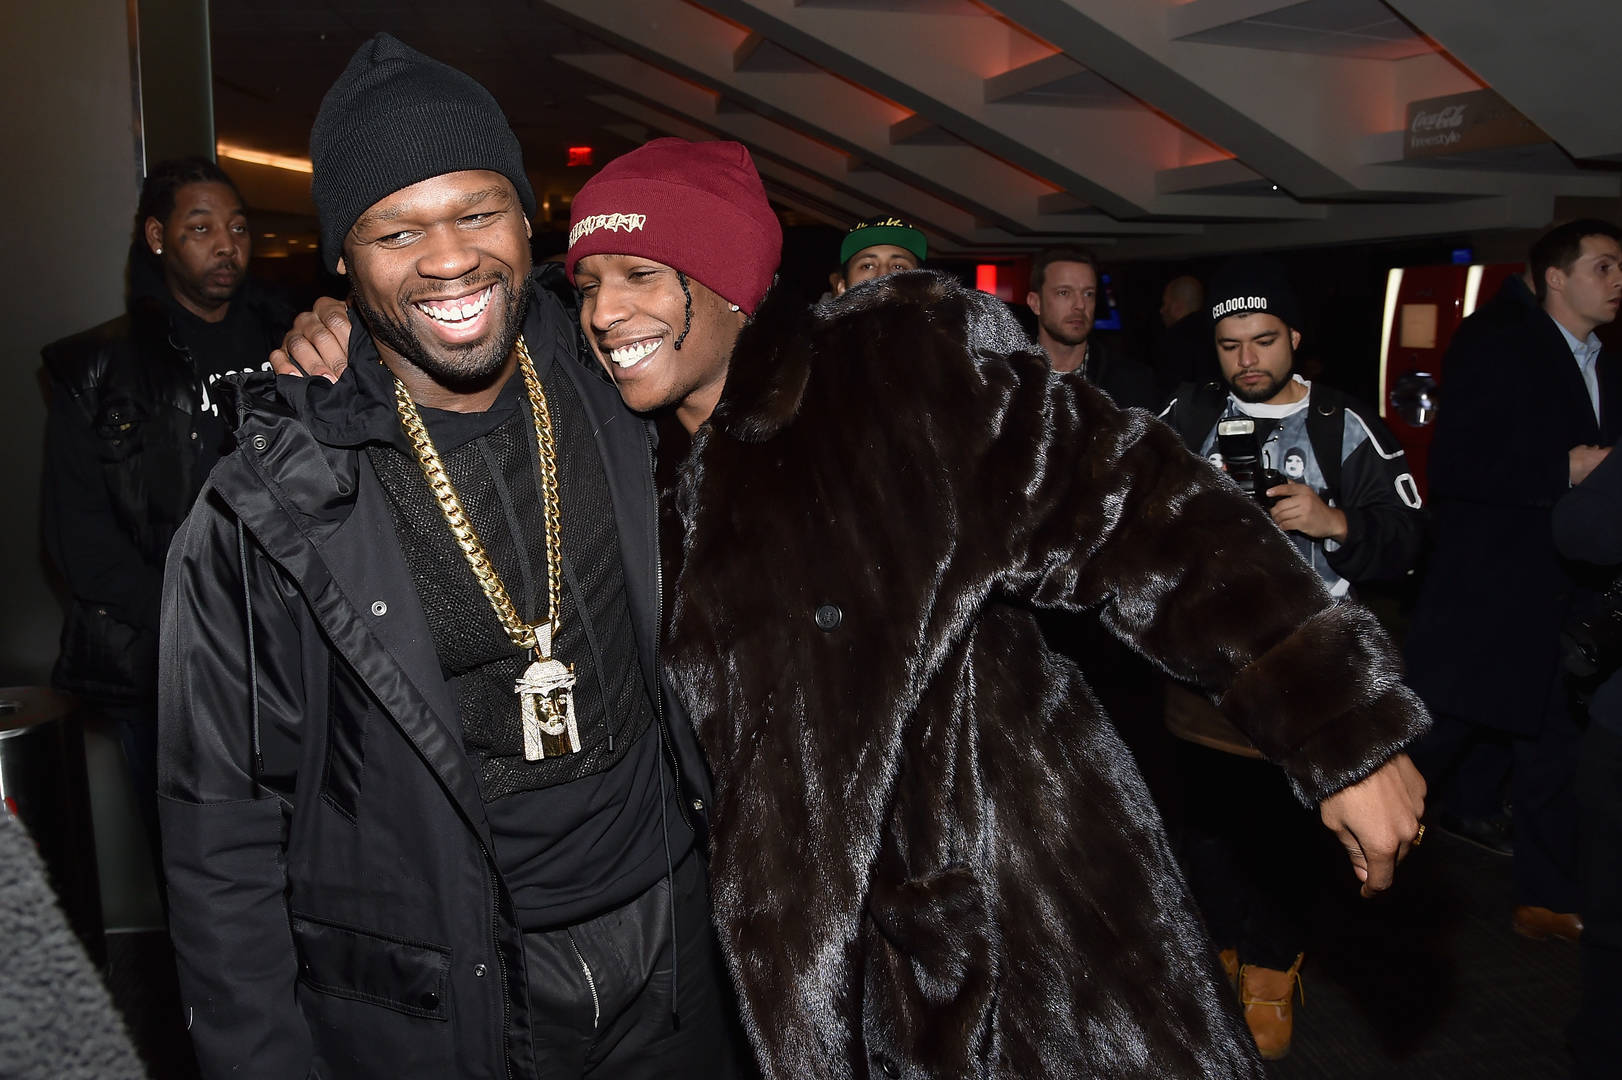 50 Cent, A$AP Rocky, Beer Pong